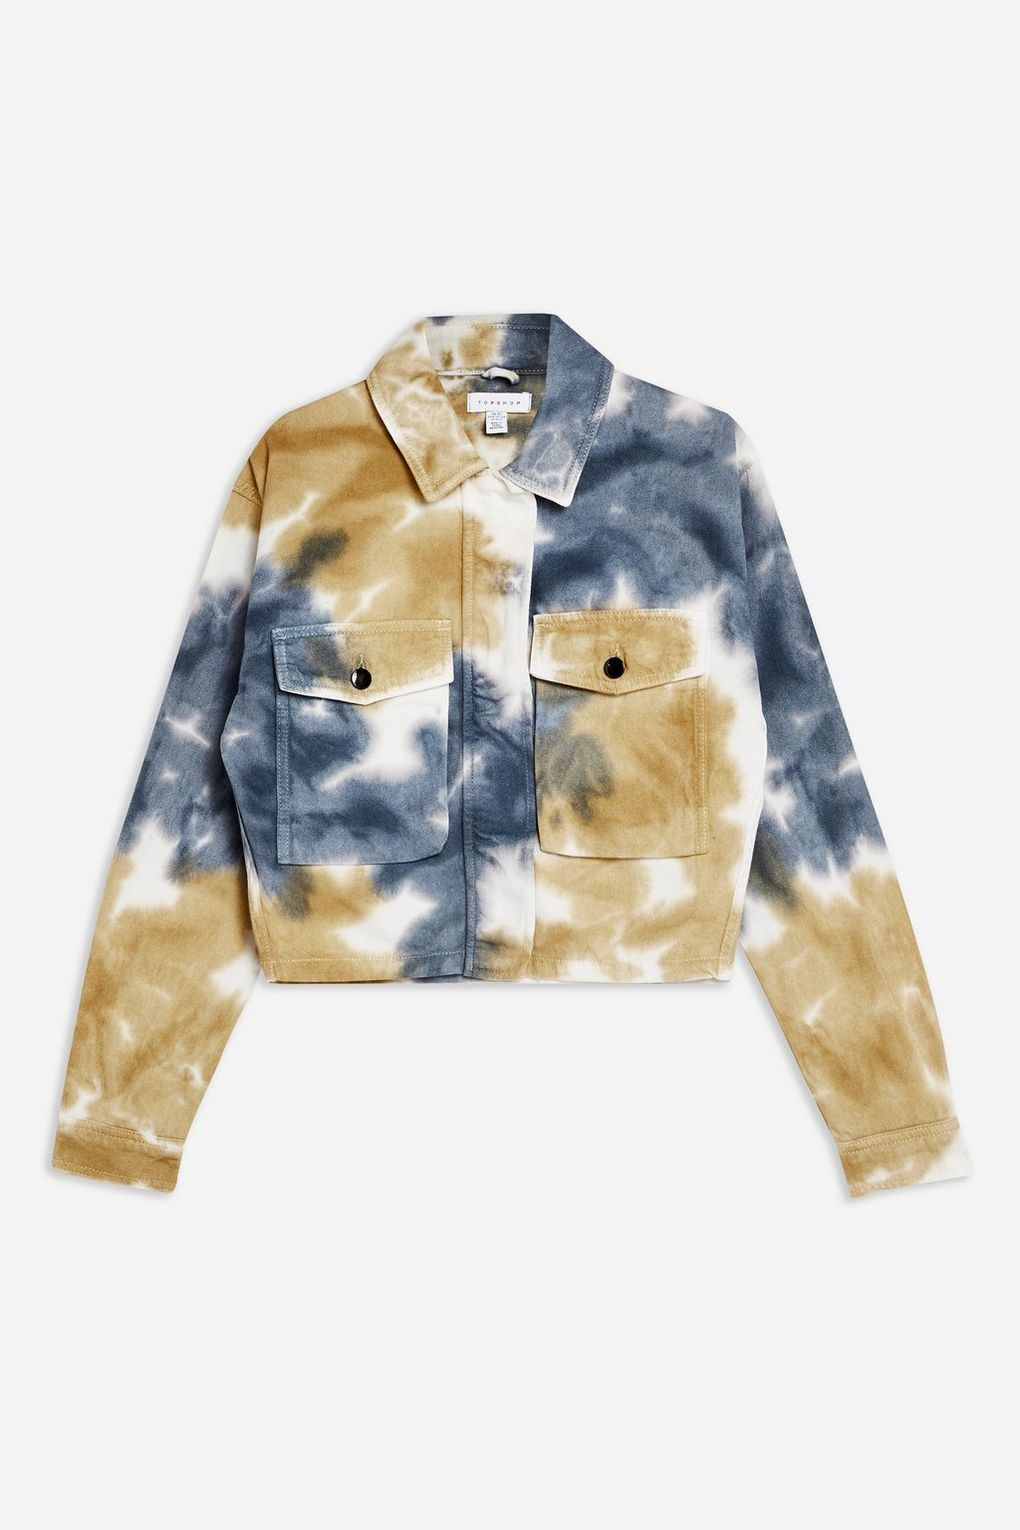 Tie Dye Shacket Top Shop topshop.com $75.00 SHOP NOW Test drive the tie-dye trend with this hip-skimming jacket.